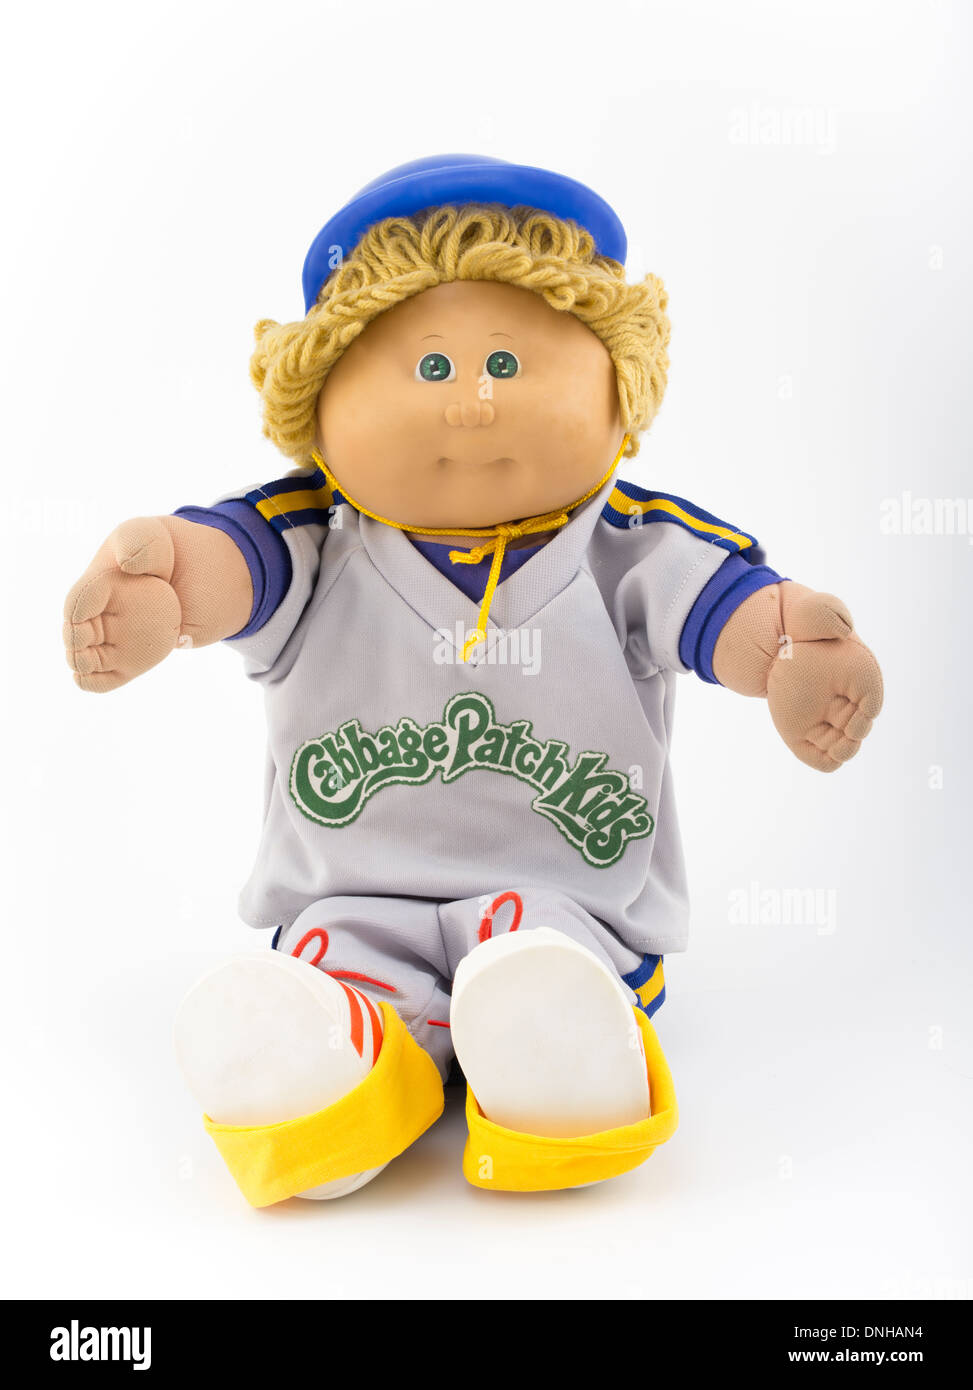 Cabbage Patch Kids High Resolution Stock Photography and Images - Alamy